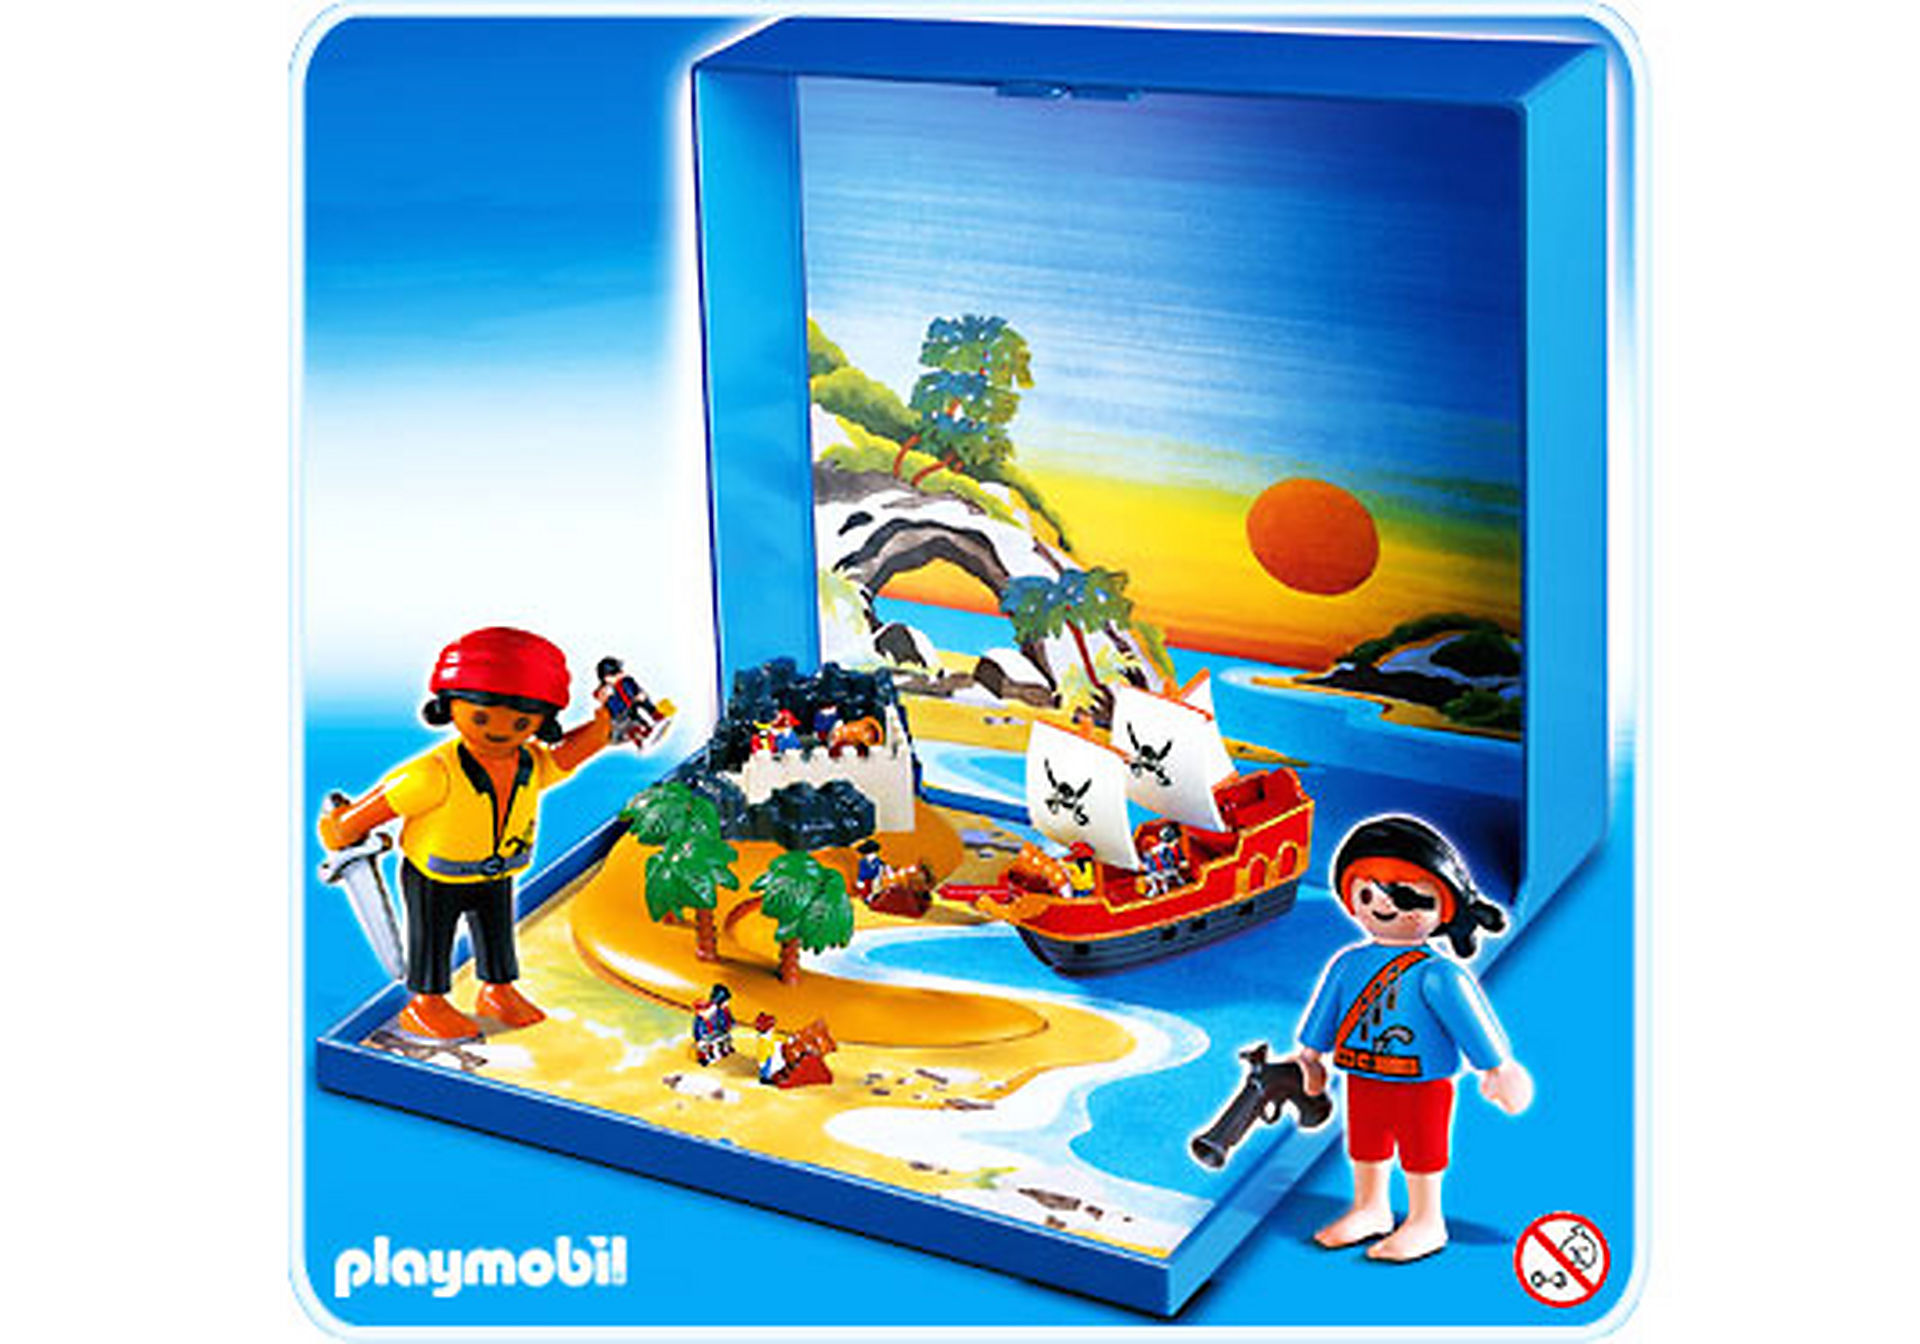 http://media.playmobil.com/i/playmobil/4331-A_product_detail/MicroWelt Piraten